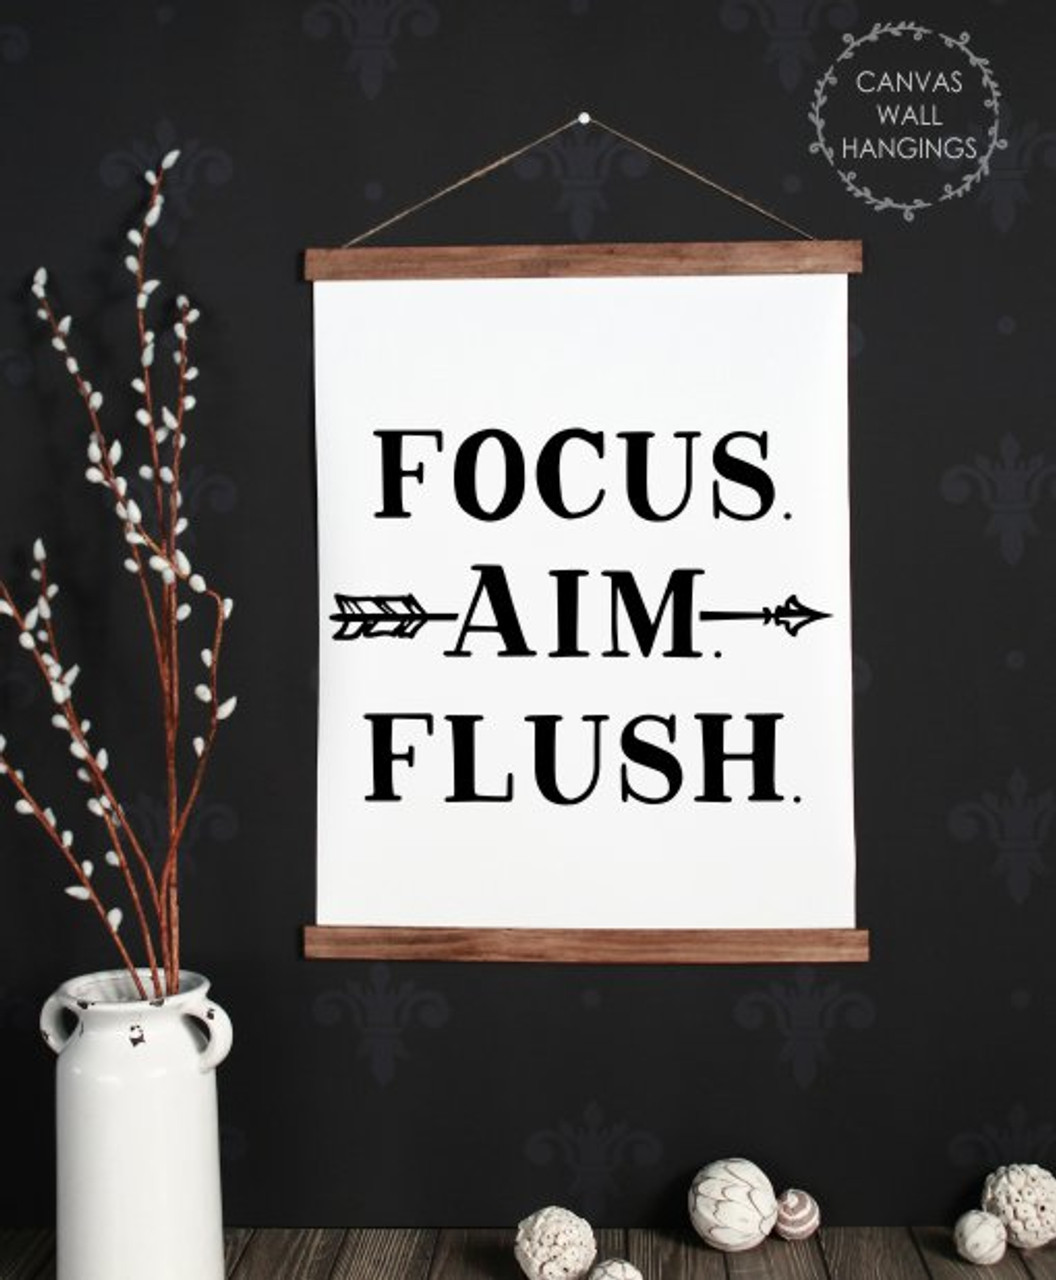 Wood Canvas Wall Hanging Bathroom Wall Art Sign Focus Flush